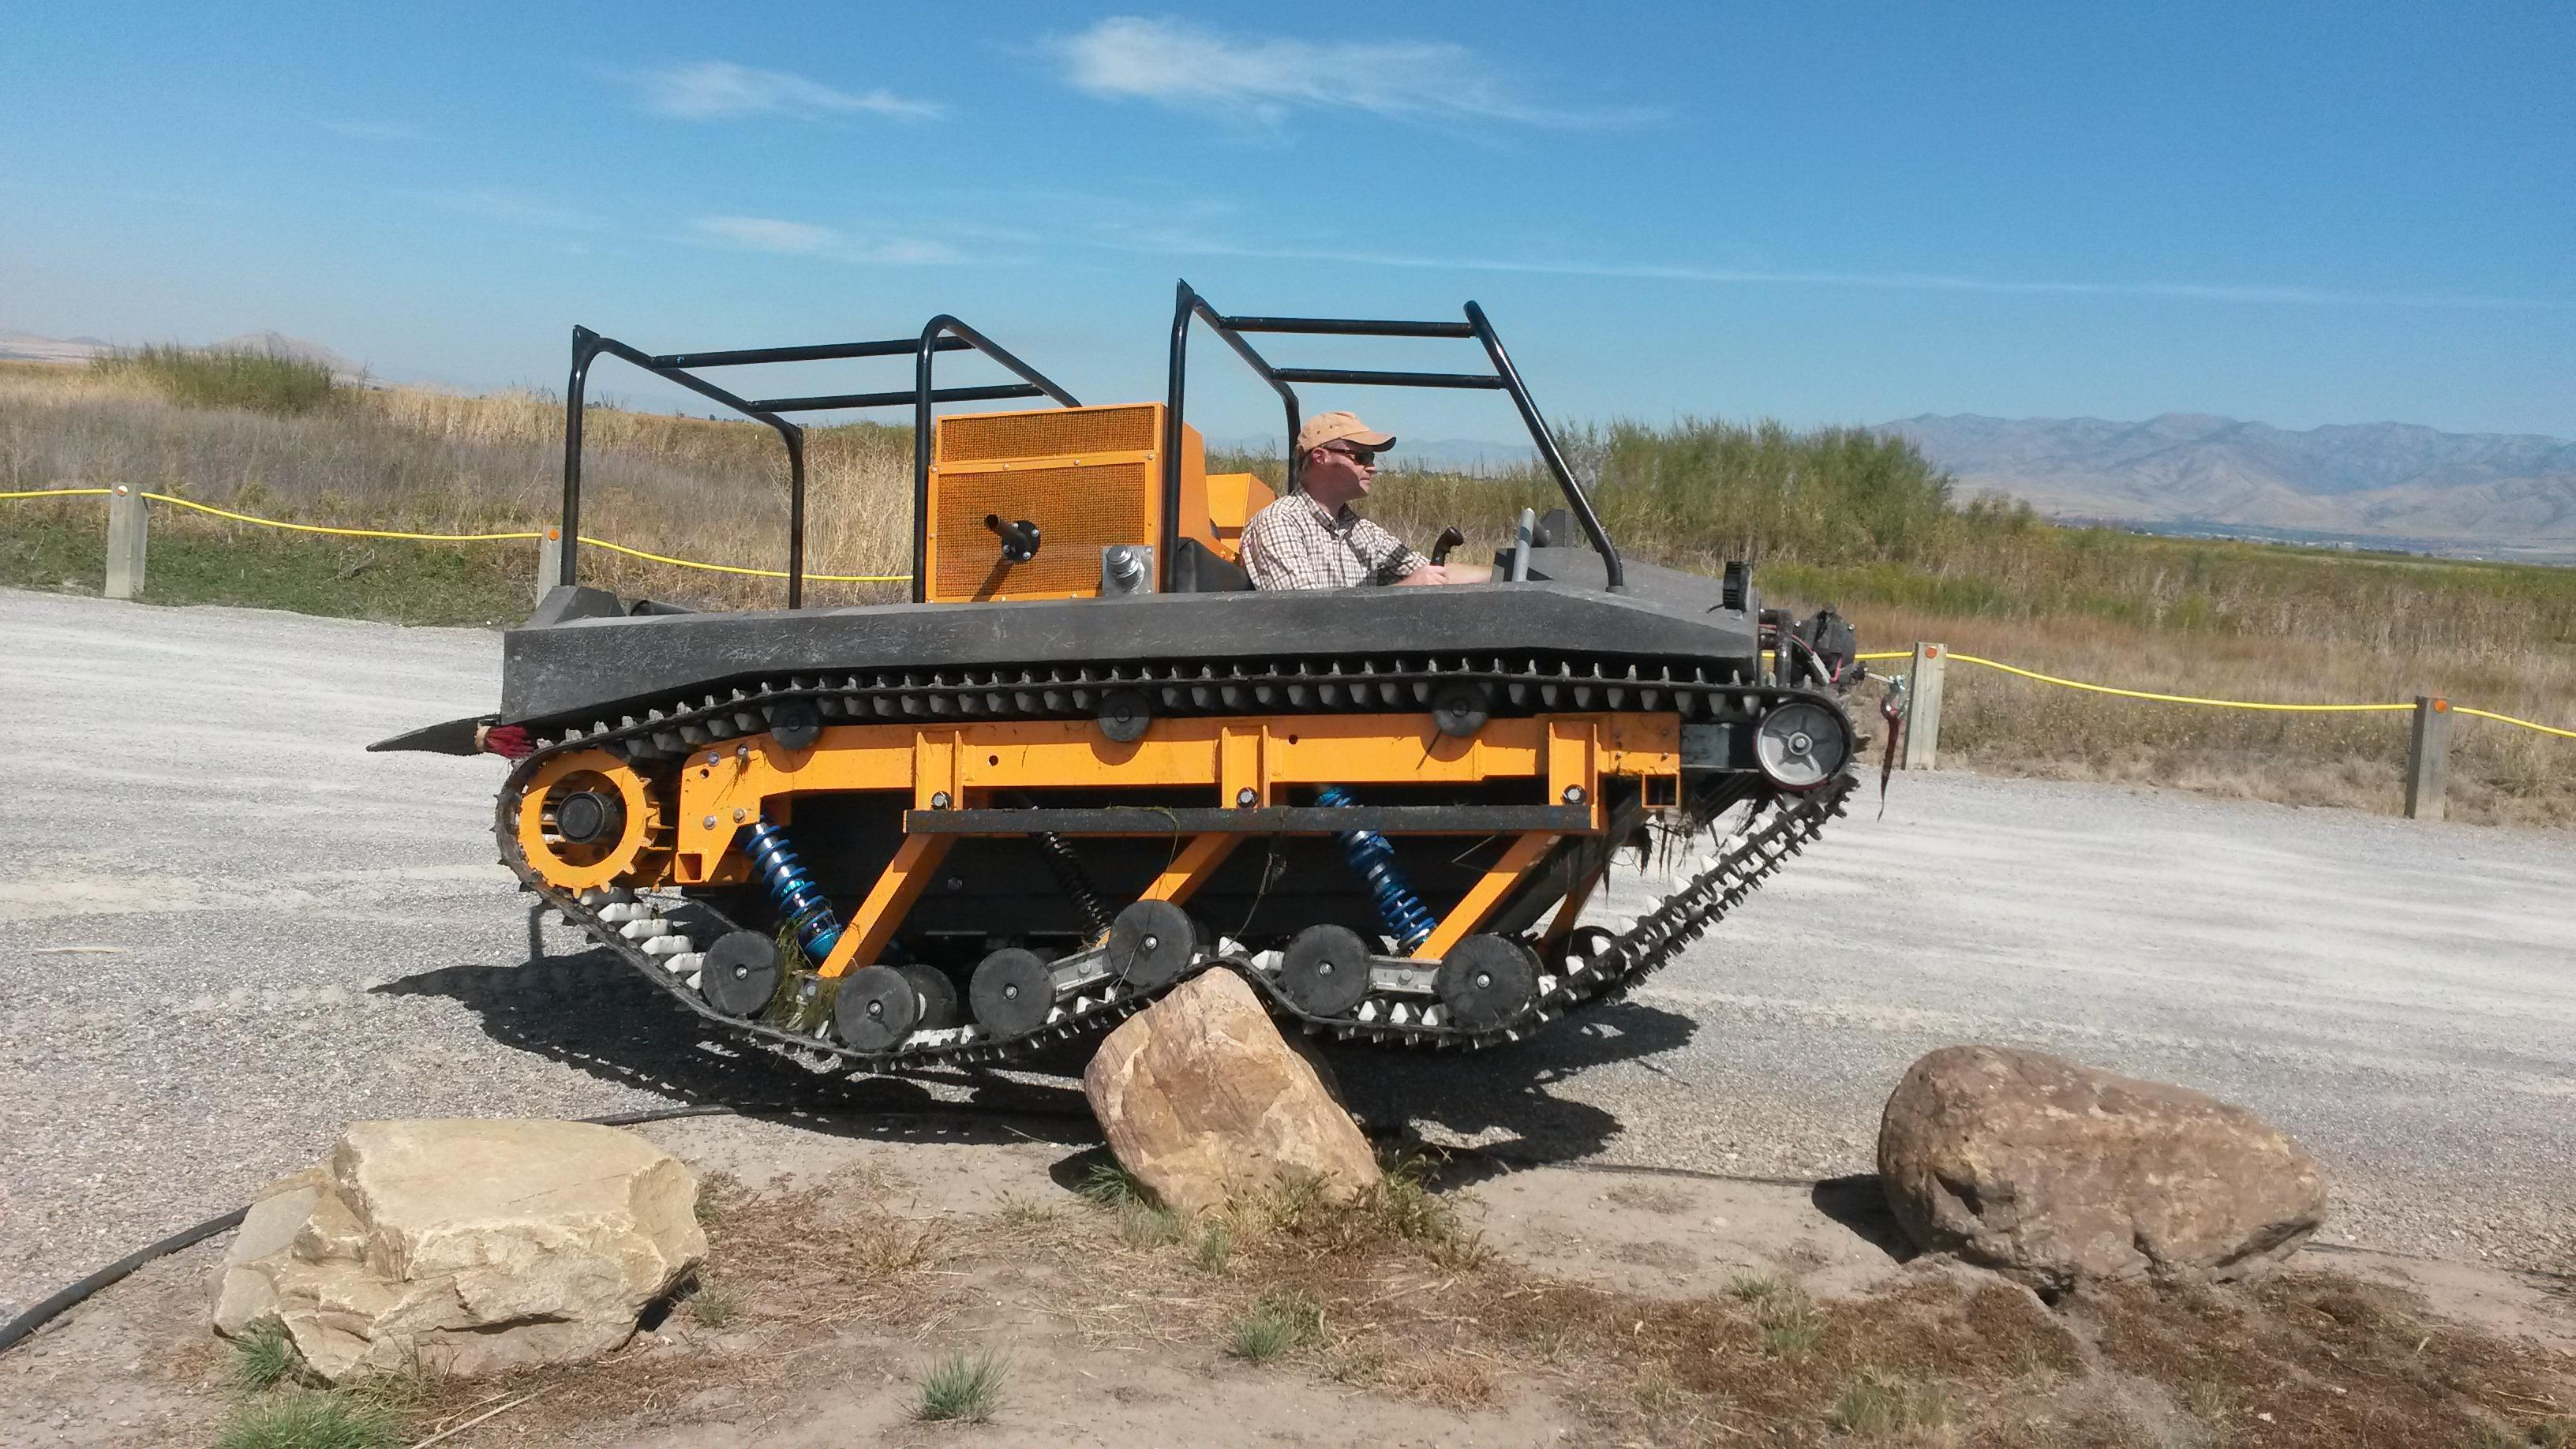 Recreational Personal Tracked Vehicle